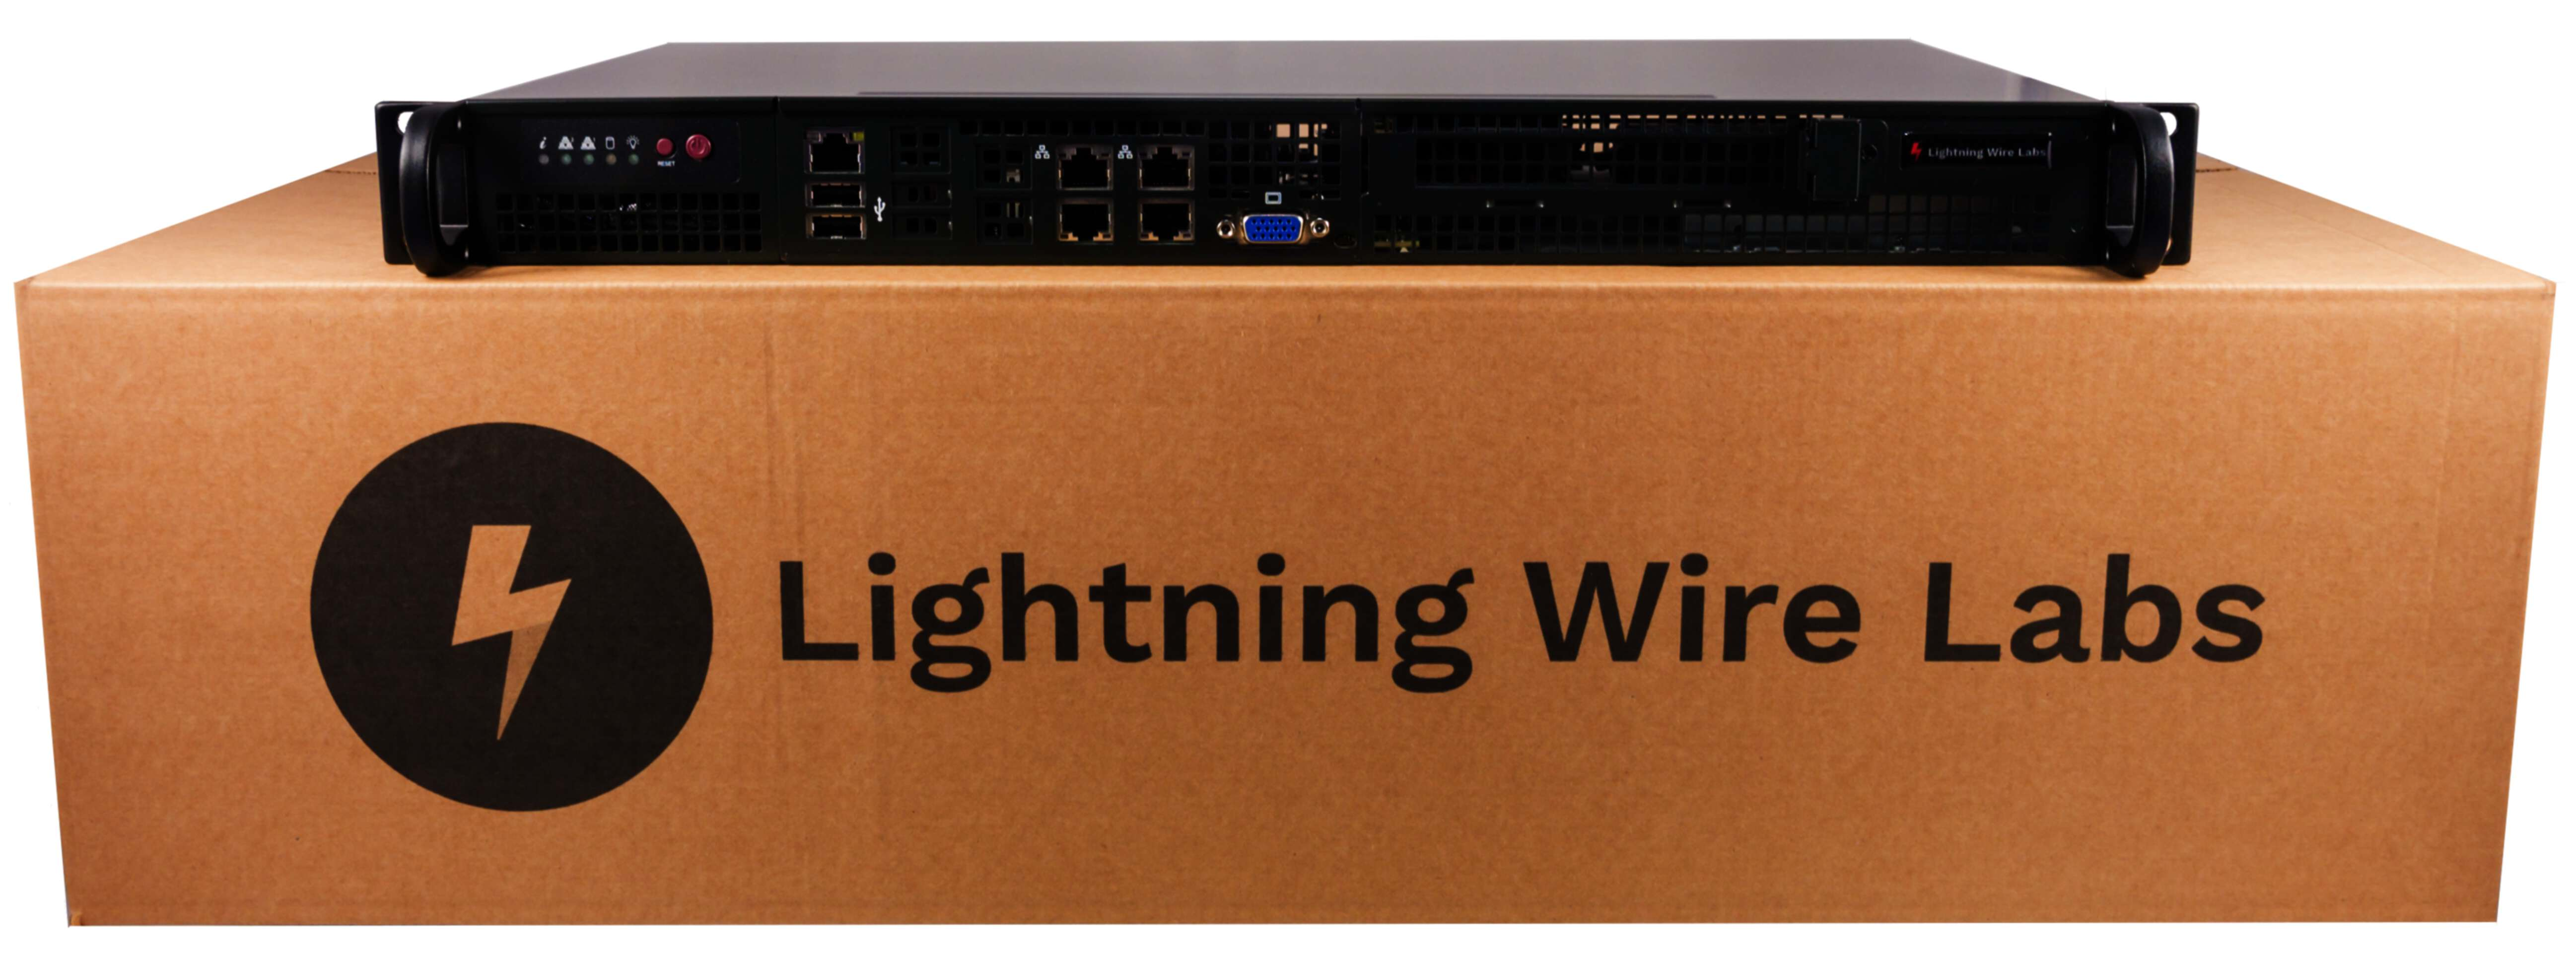 Lightning Wire Labs Appliance on Box